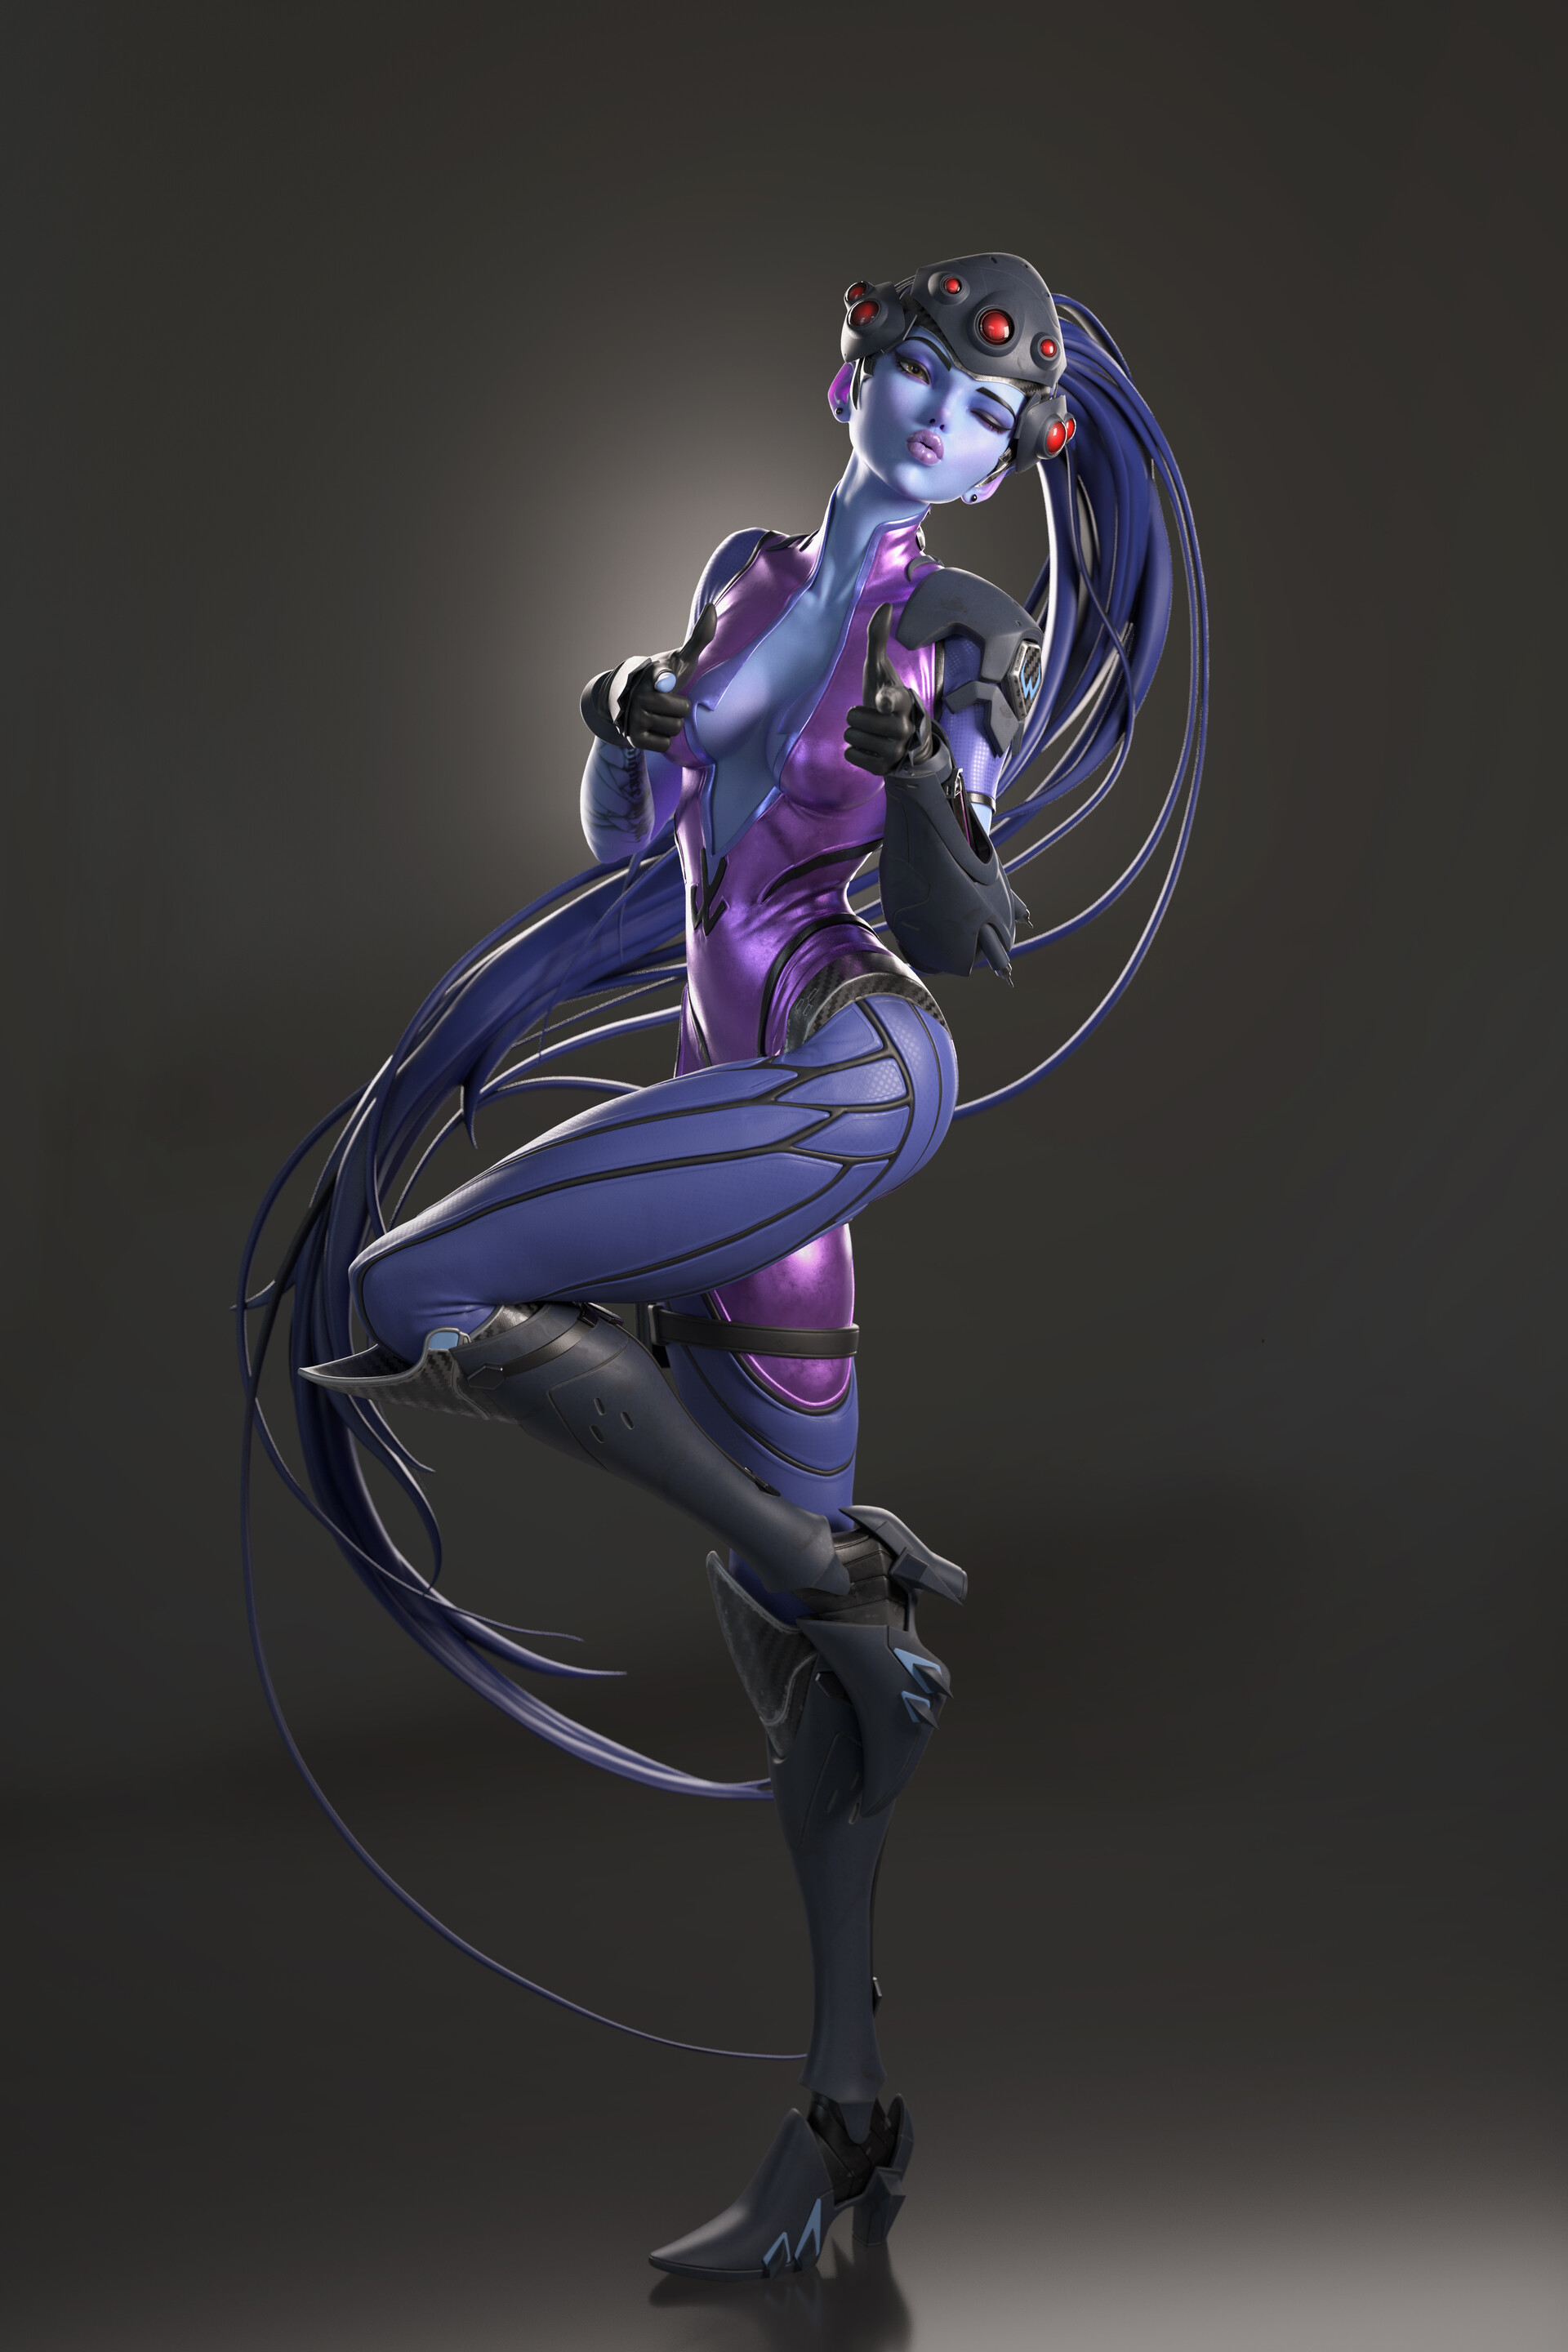 Widowmaker-Overwatch-Blizzard-фэндомы-5010591.jpeg - Overwatch